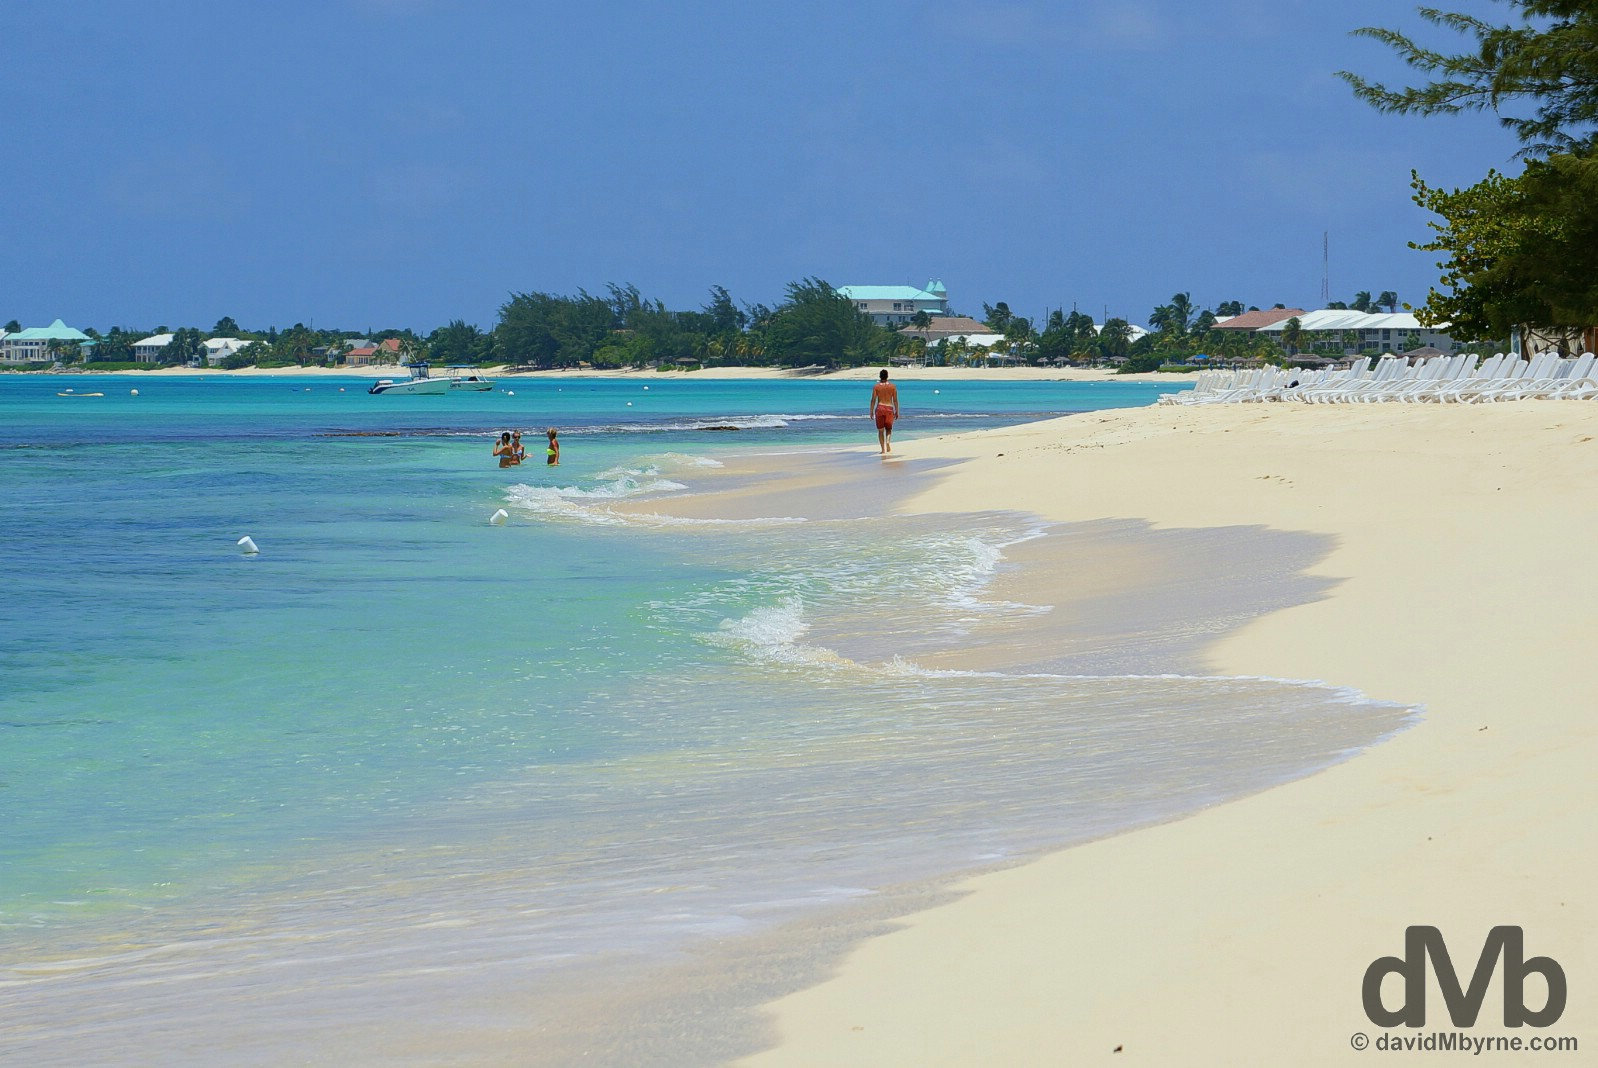 Seven Mile Beach on Grand Cayman, Cayman Islands, Greater Antilles. May 12, 2015.